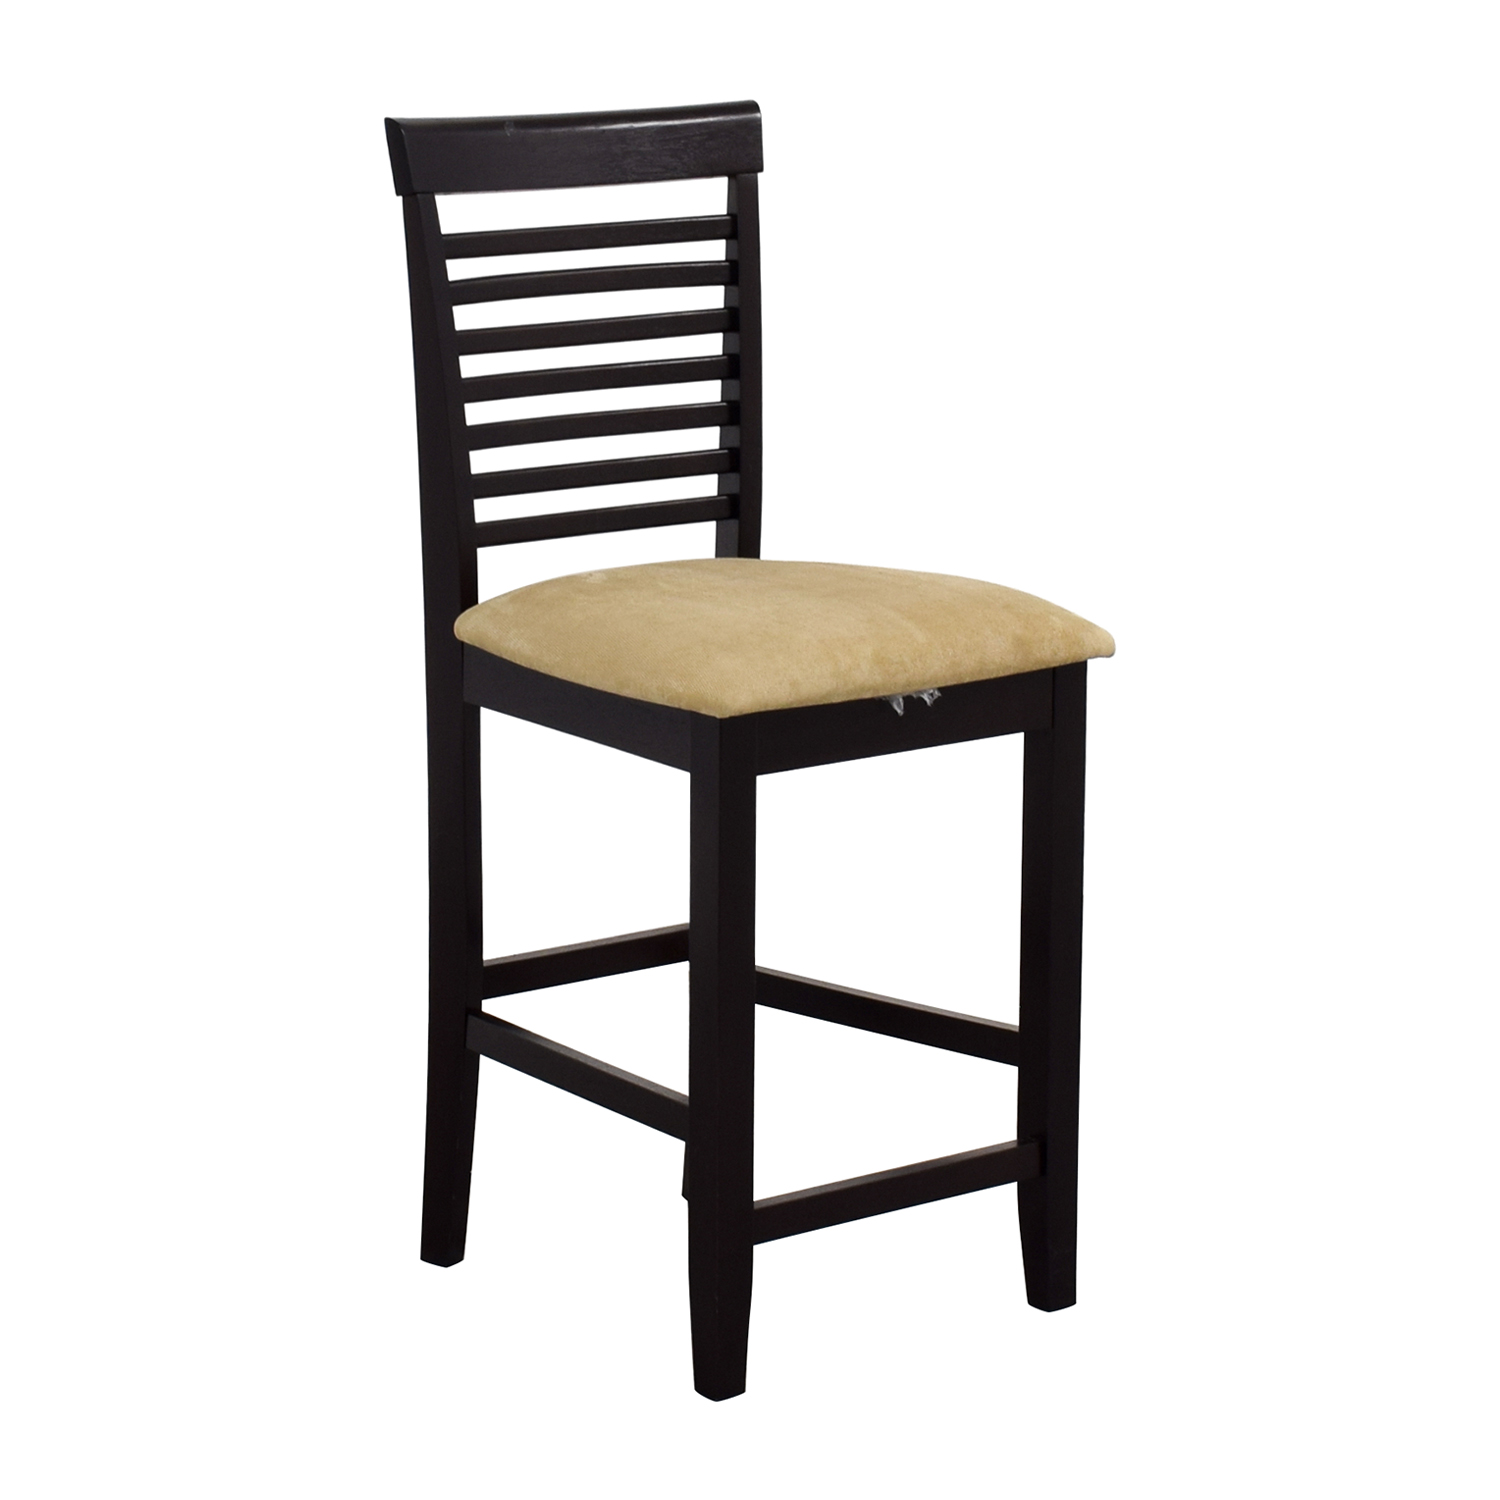 86 Off Tan Upholstered Counter Bar Stool Chairs